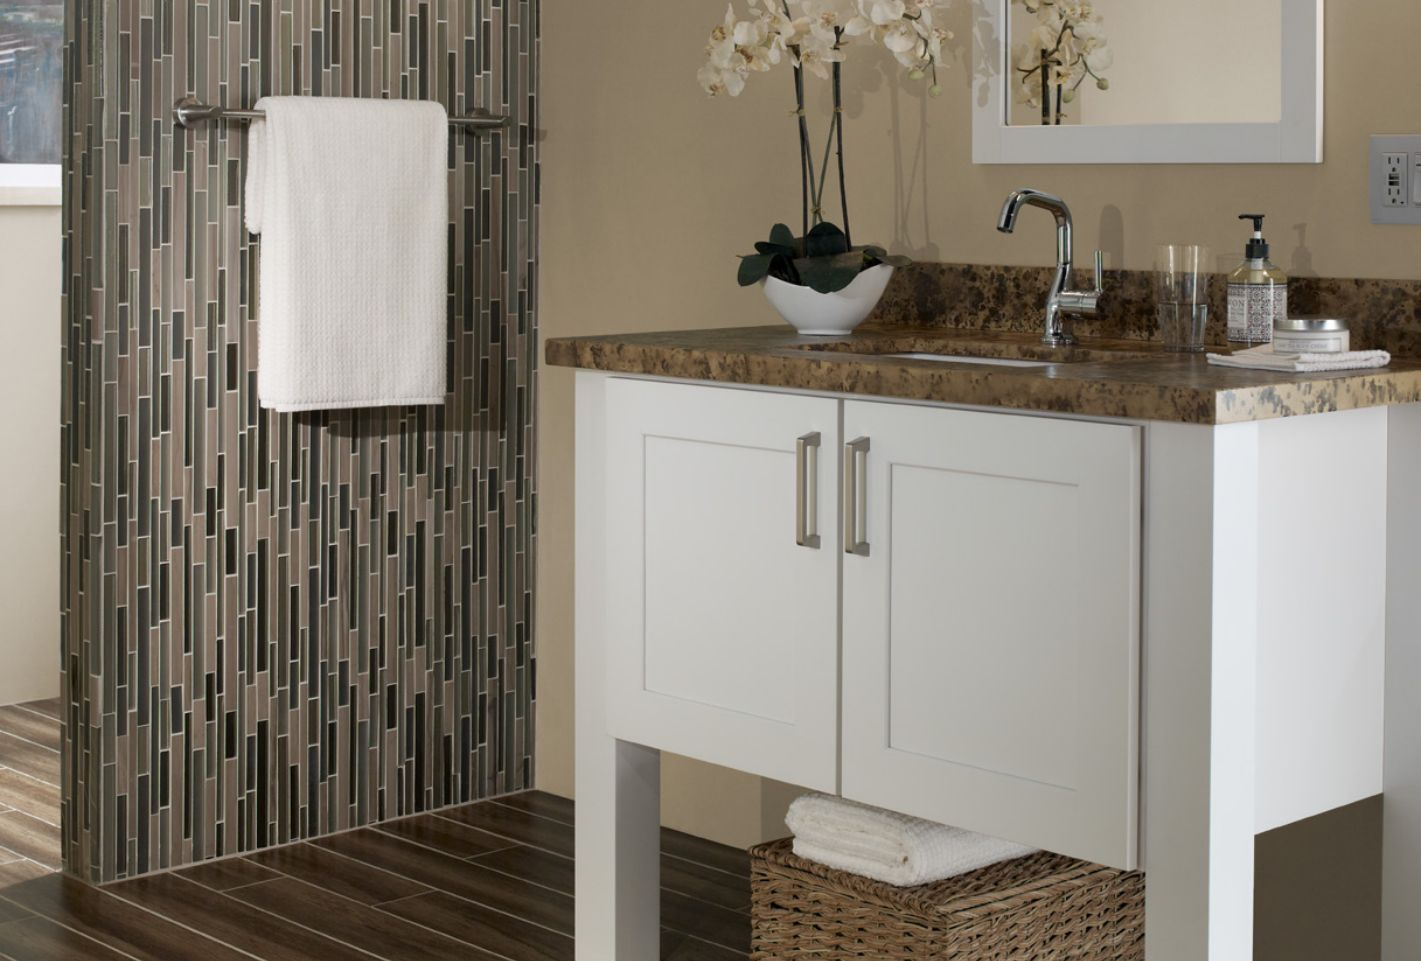 Tile samples for bathroom - Tile Samples For Bathroom 57